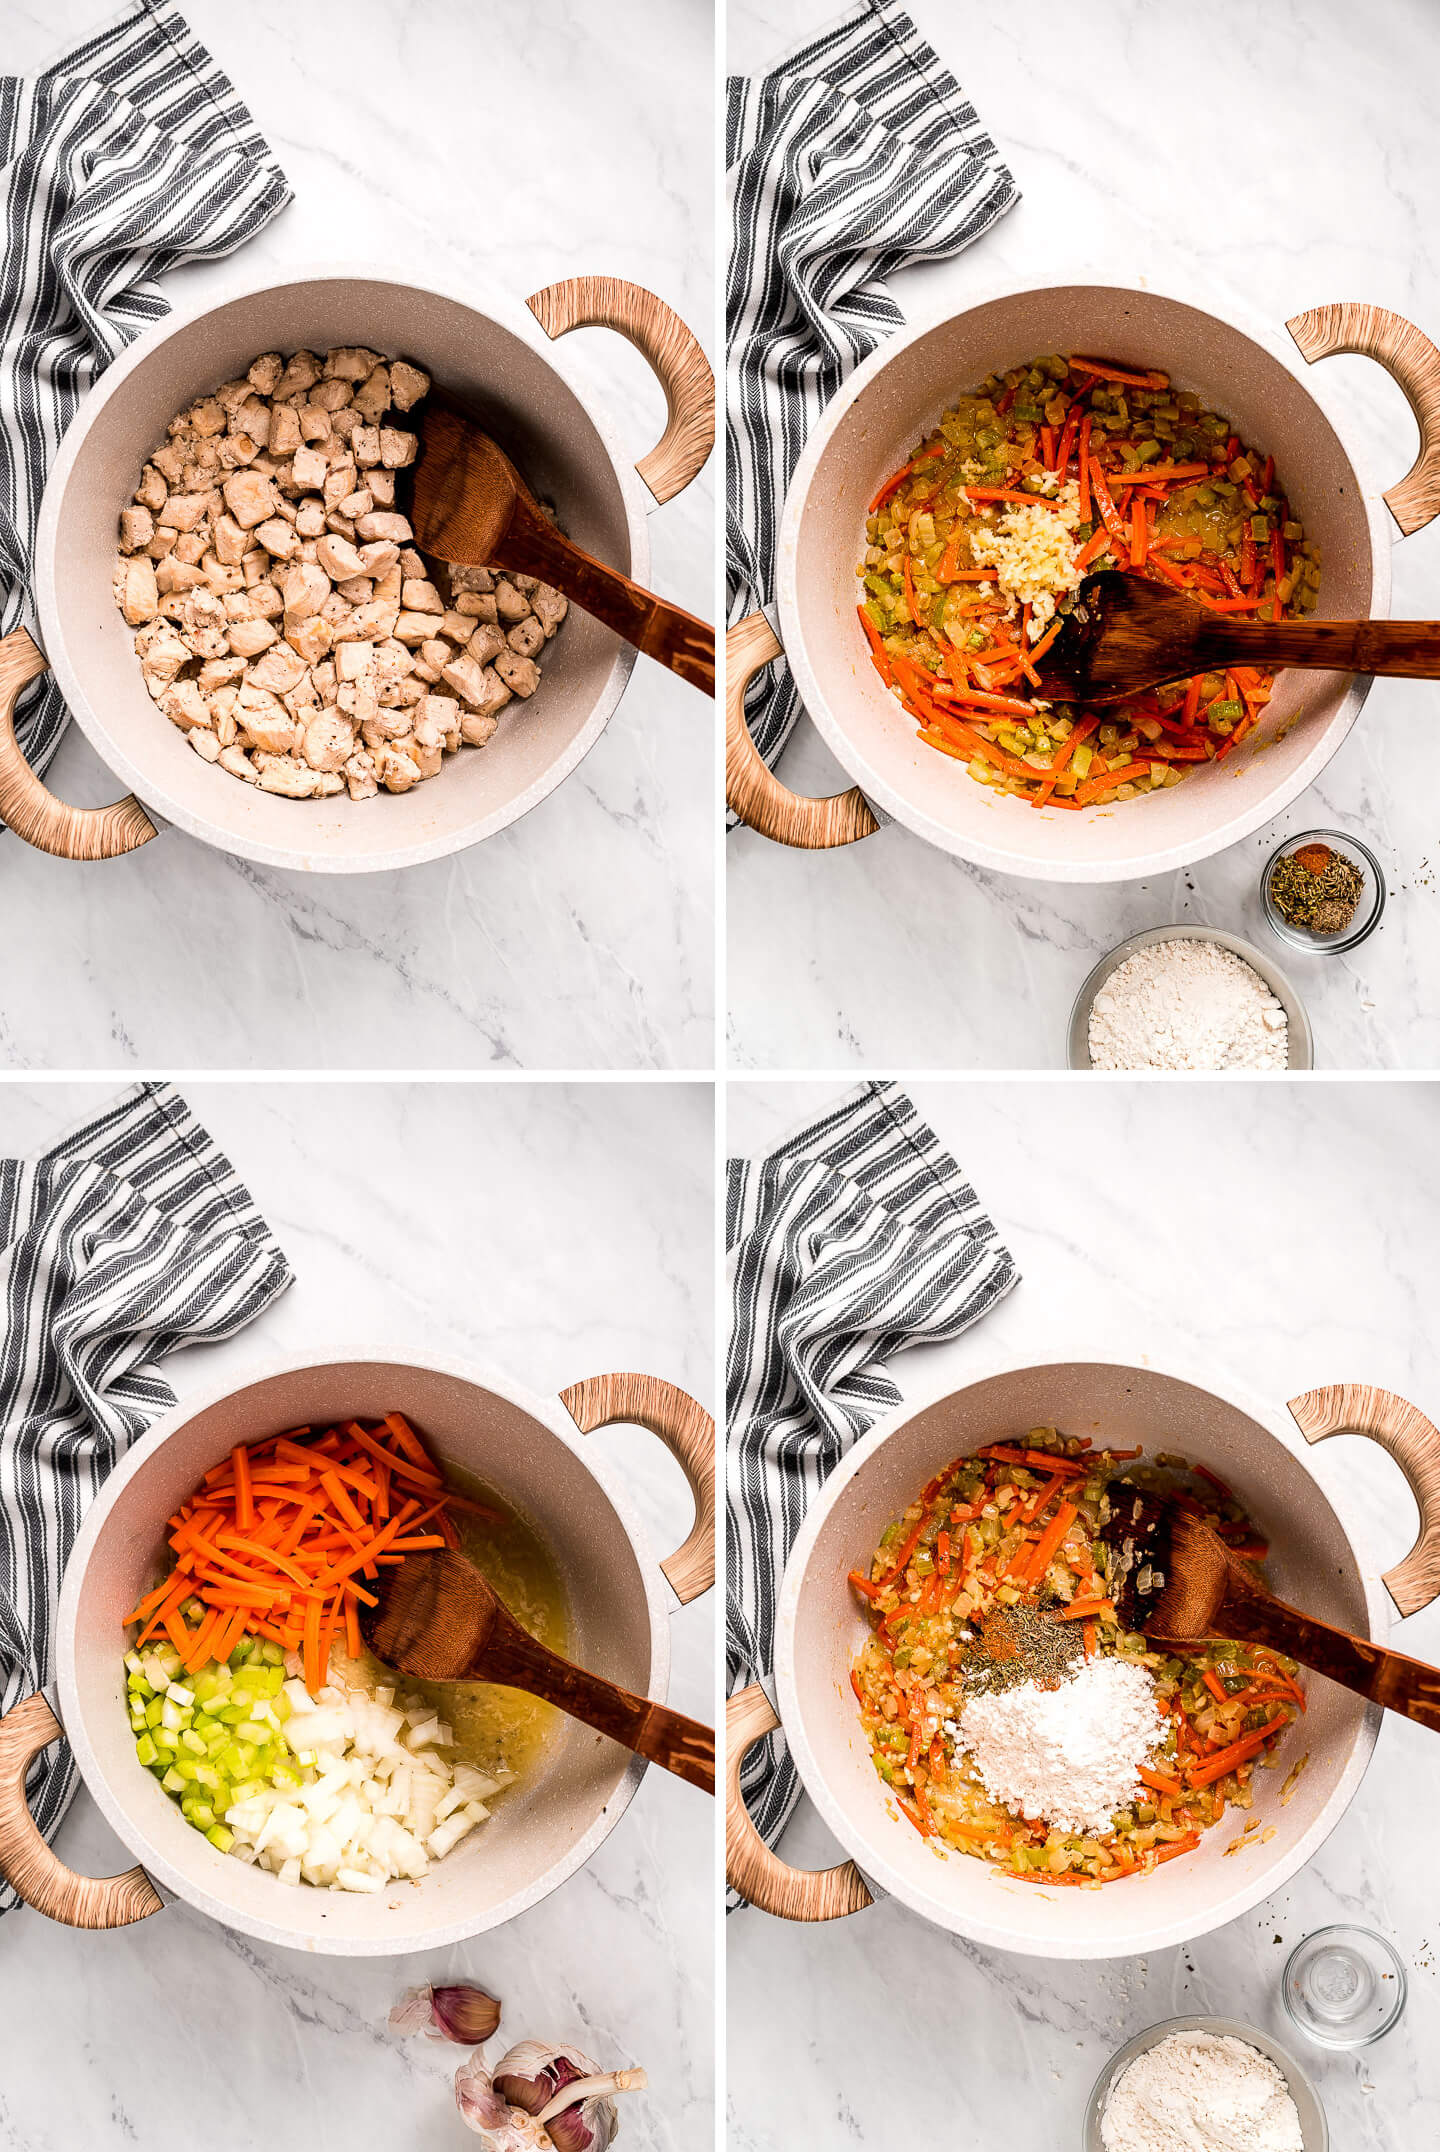 Multiple photos showing how to cook bite size chicken and vegetables for soup.